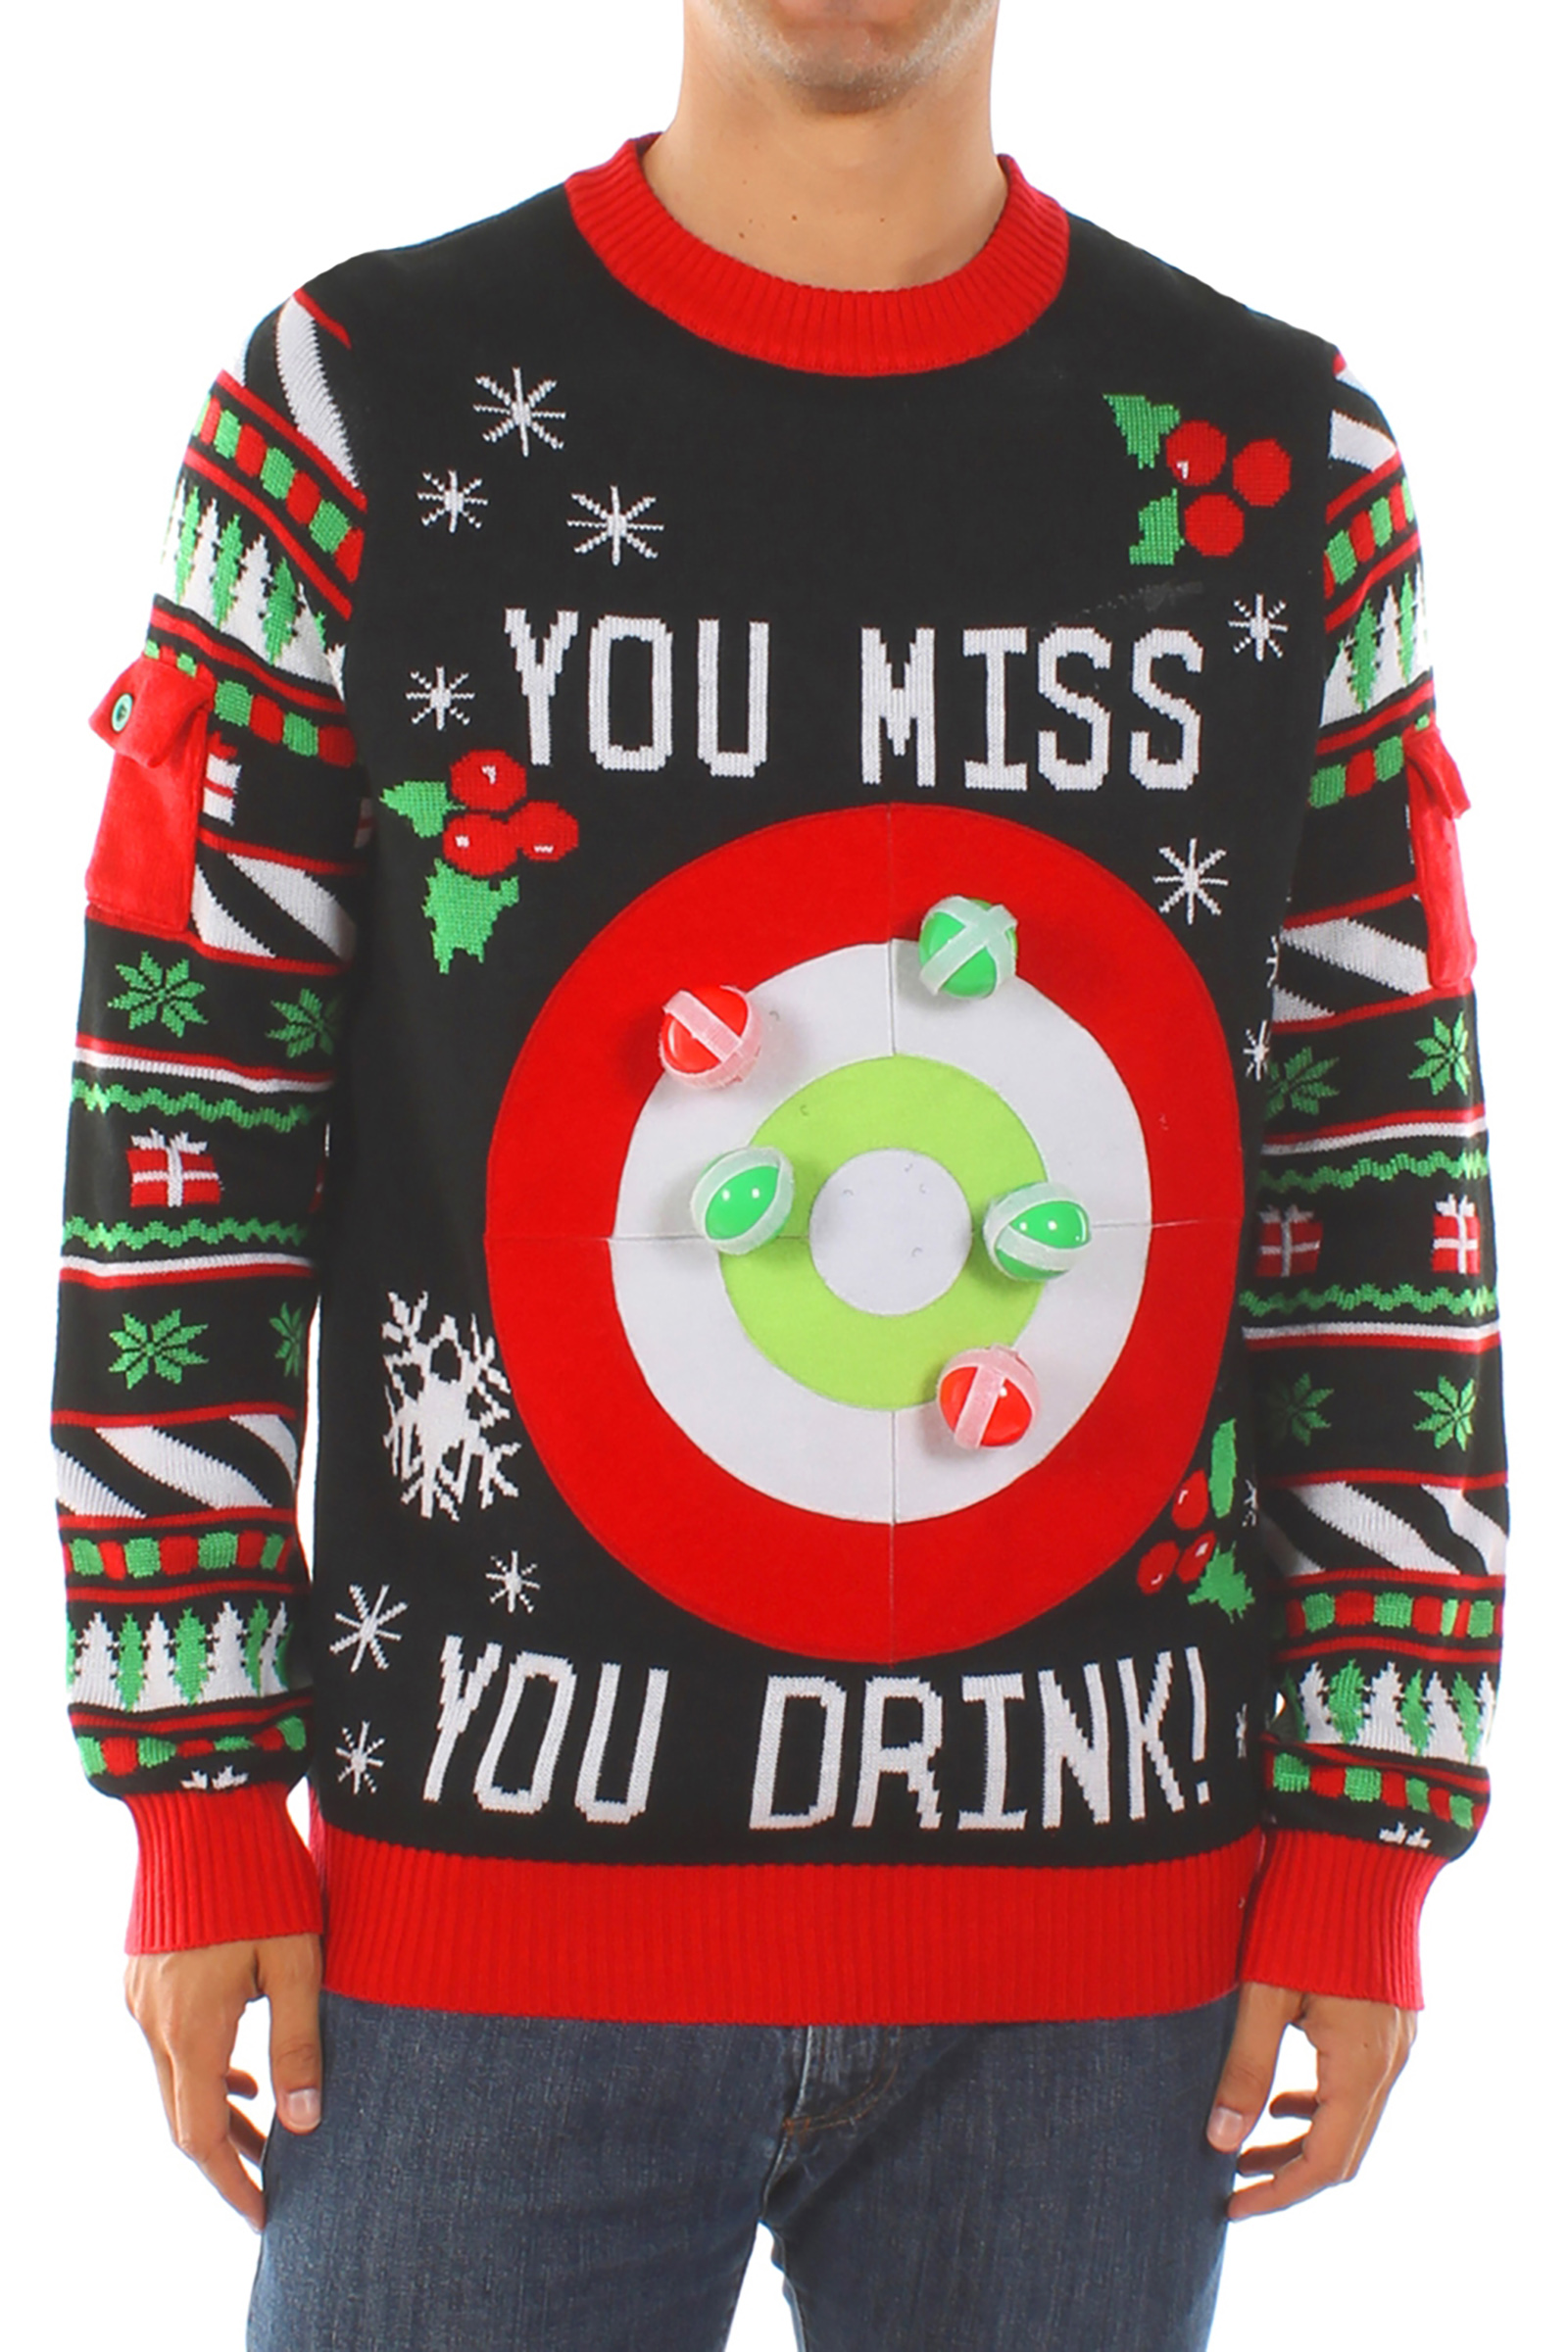 15 Best Ugly Christmas Sweaters for Women - Funny Holiday Sweater ...